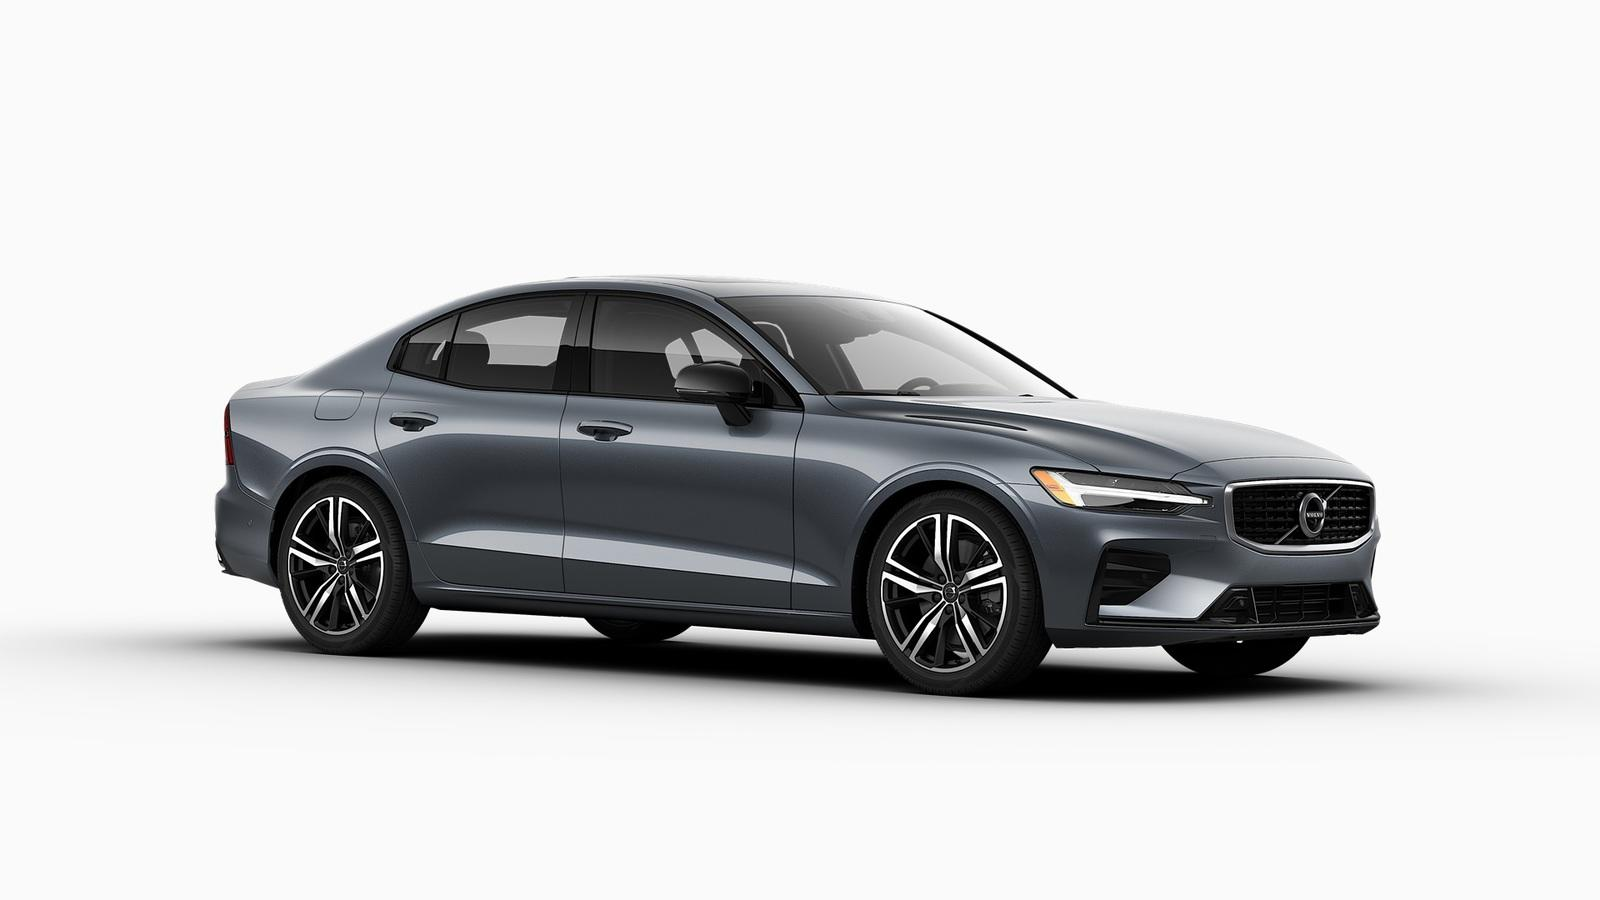 2019 volvo s60 pictures  photos  wallpapers